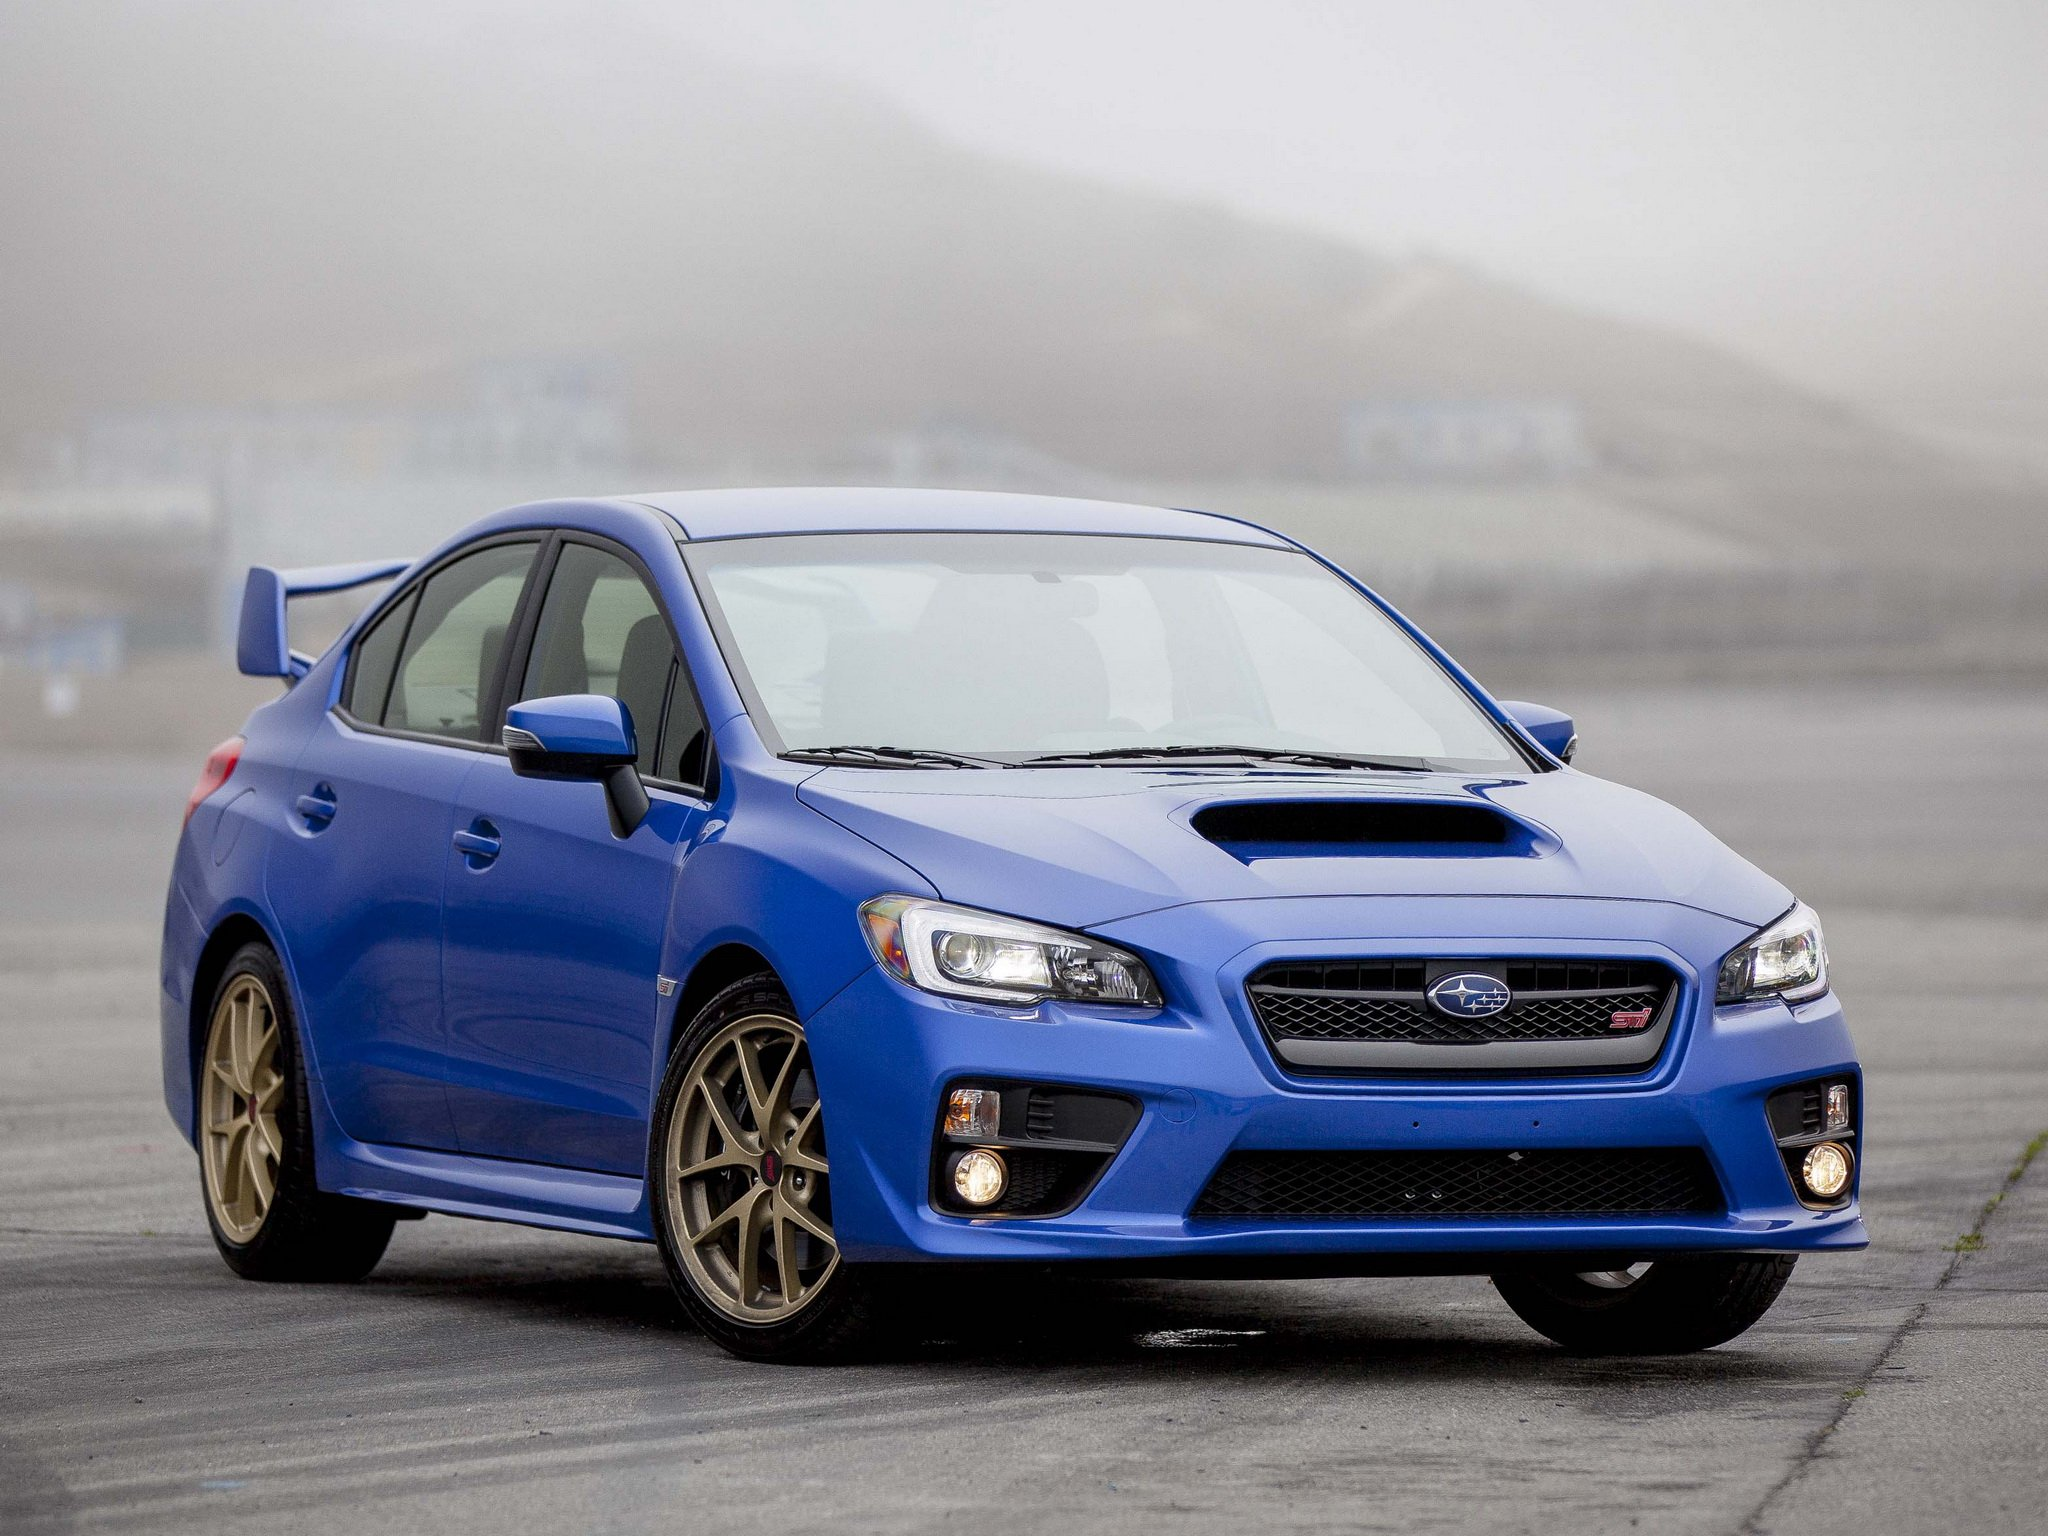 2014 subaru wrx sti us spec rw wallpaper 2048x1536. Black Bedroom Furniture Sets. Home Design Ideas